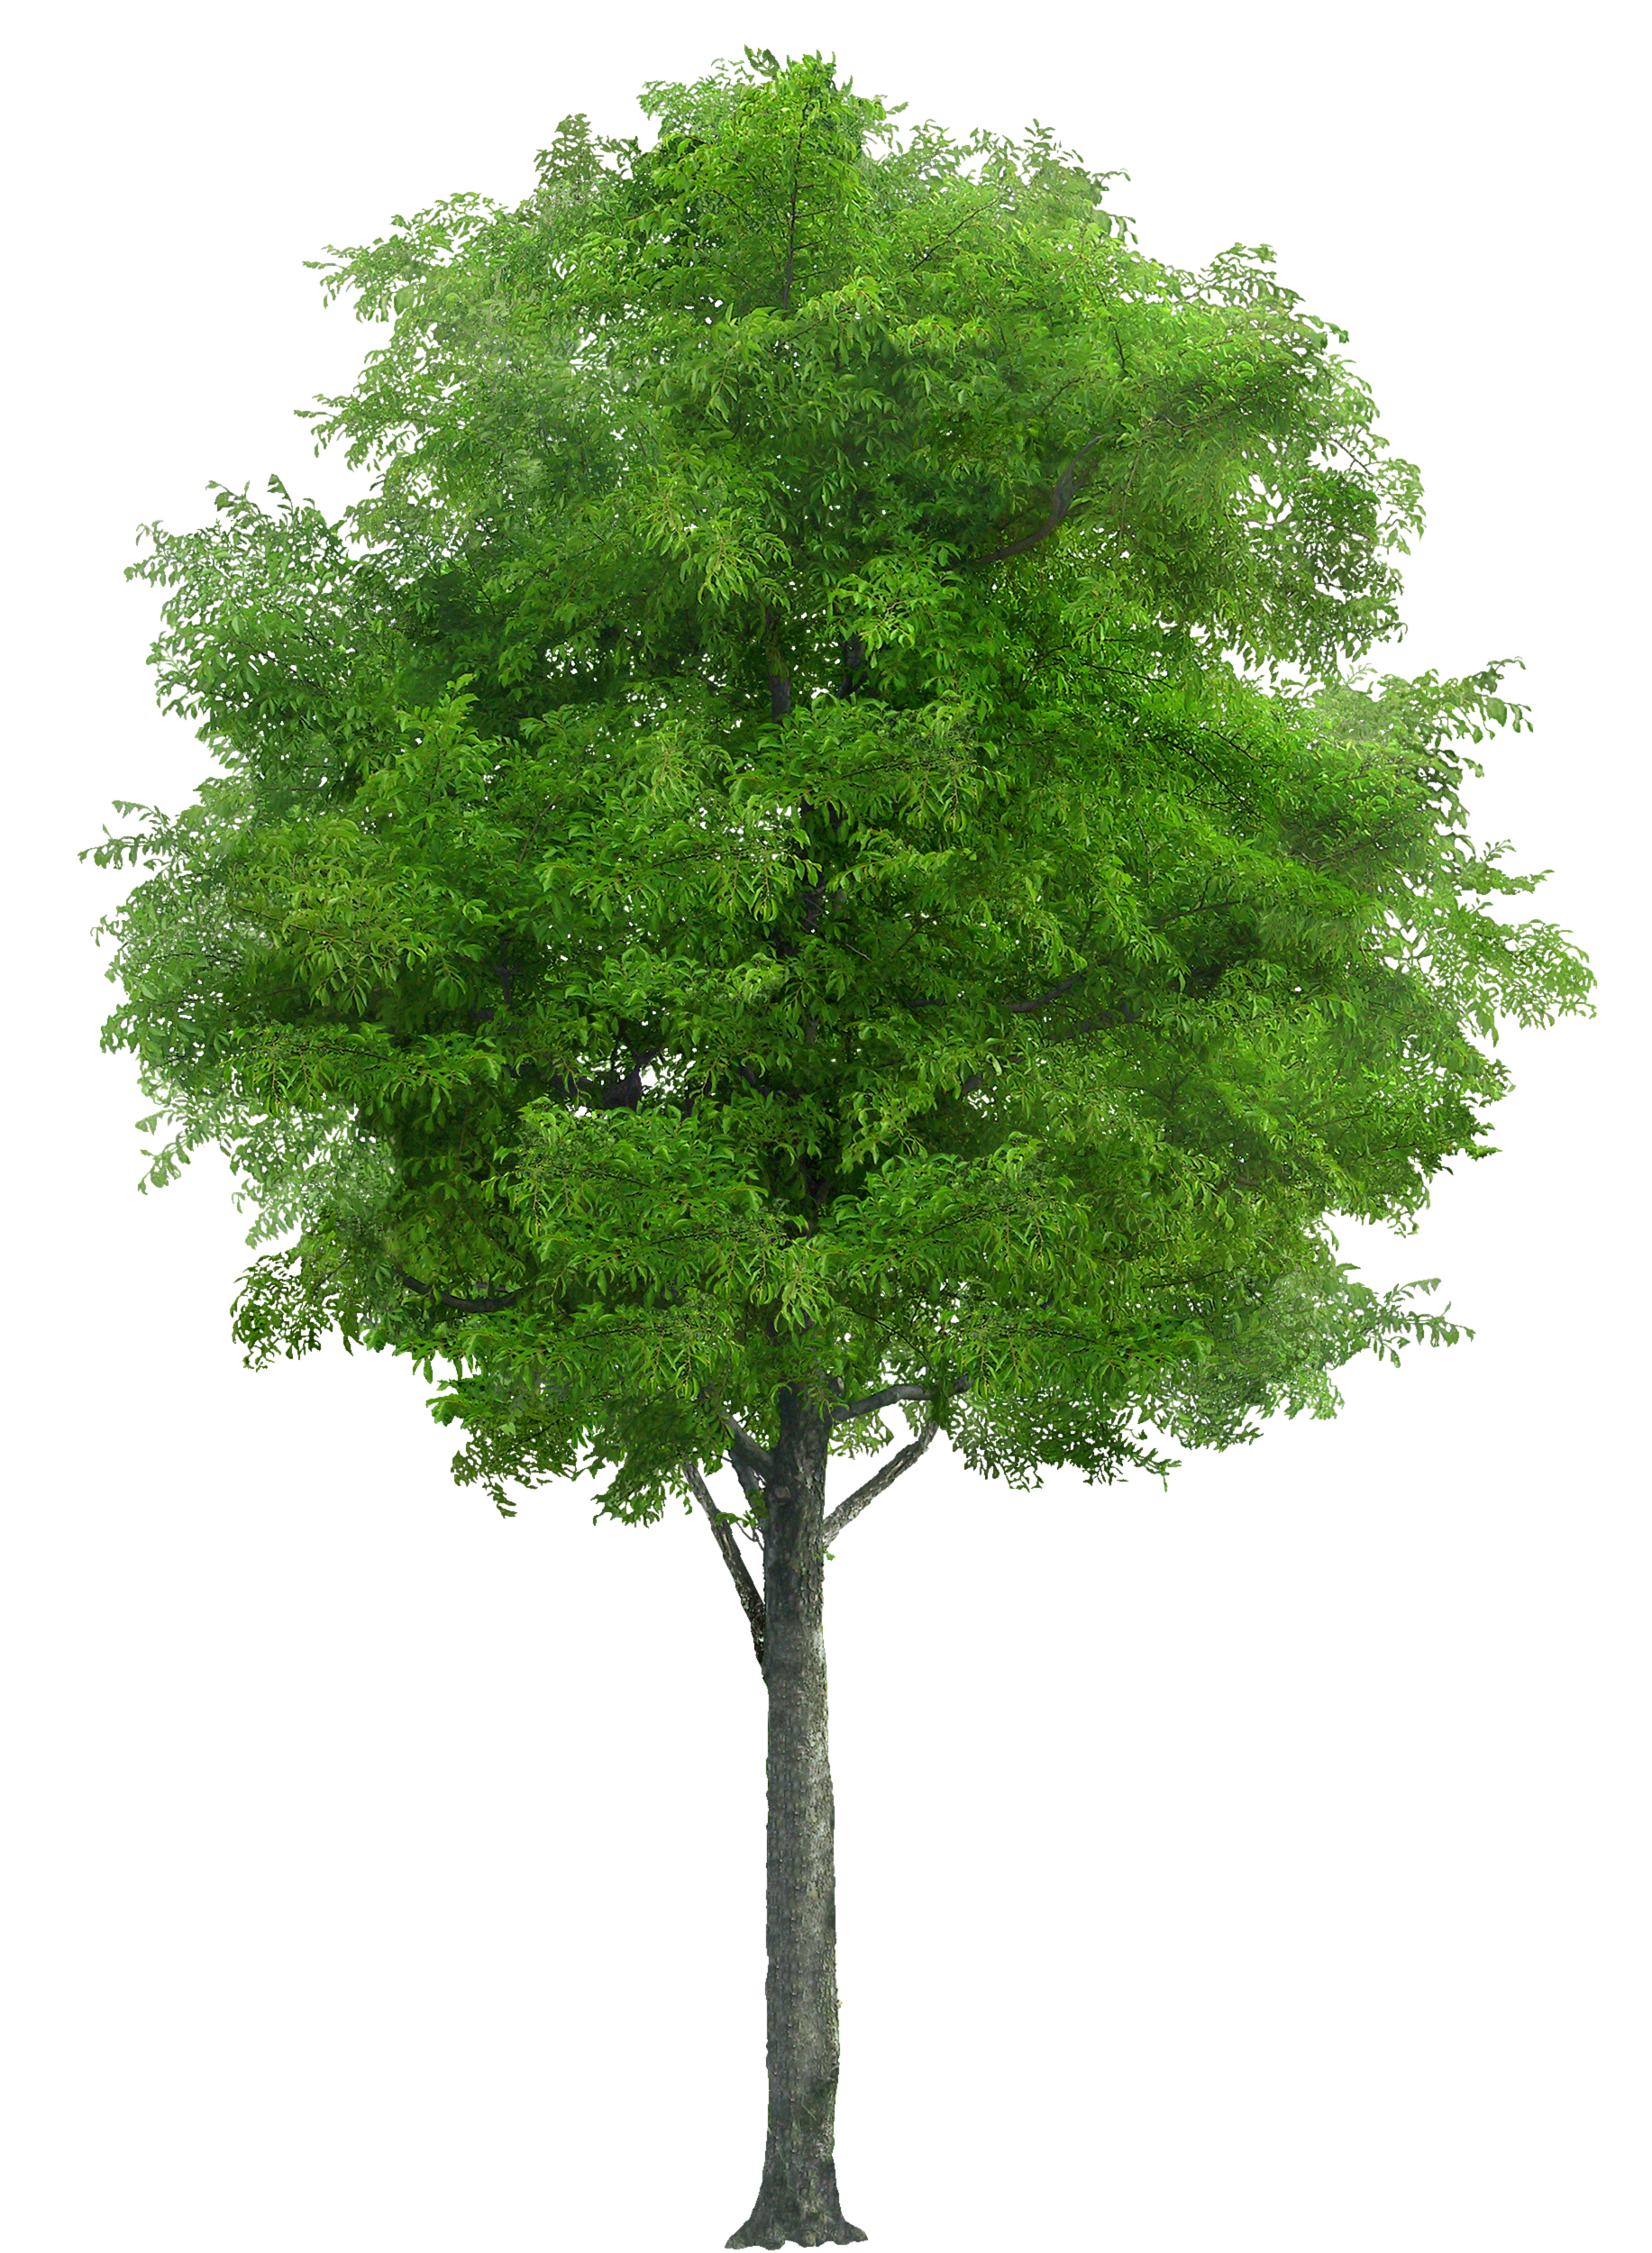 Tree Png Image - Tree PNG